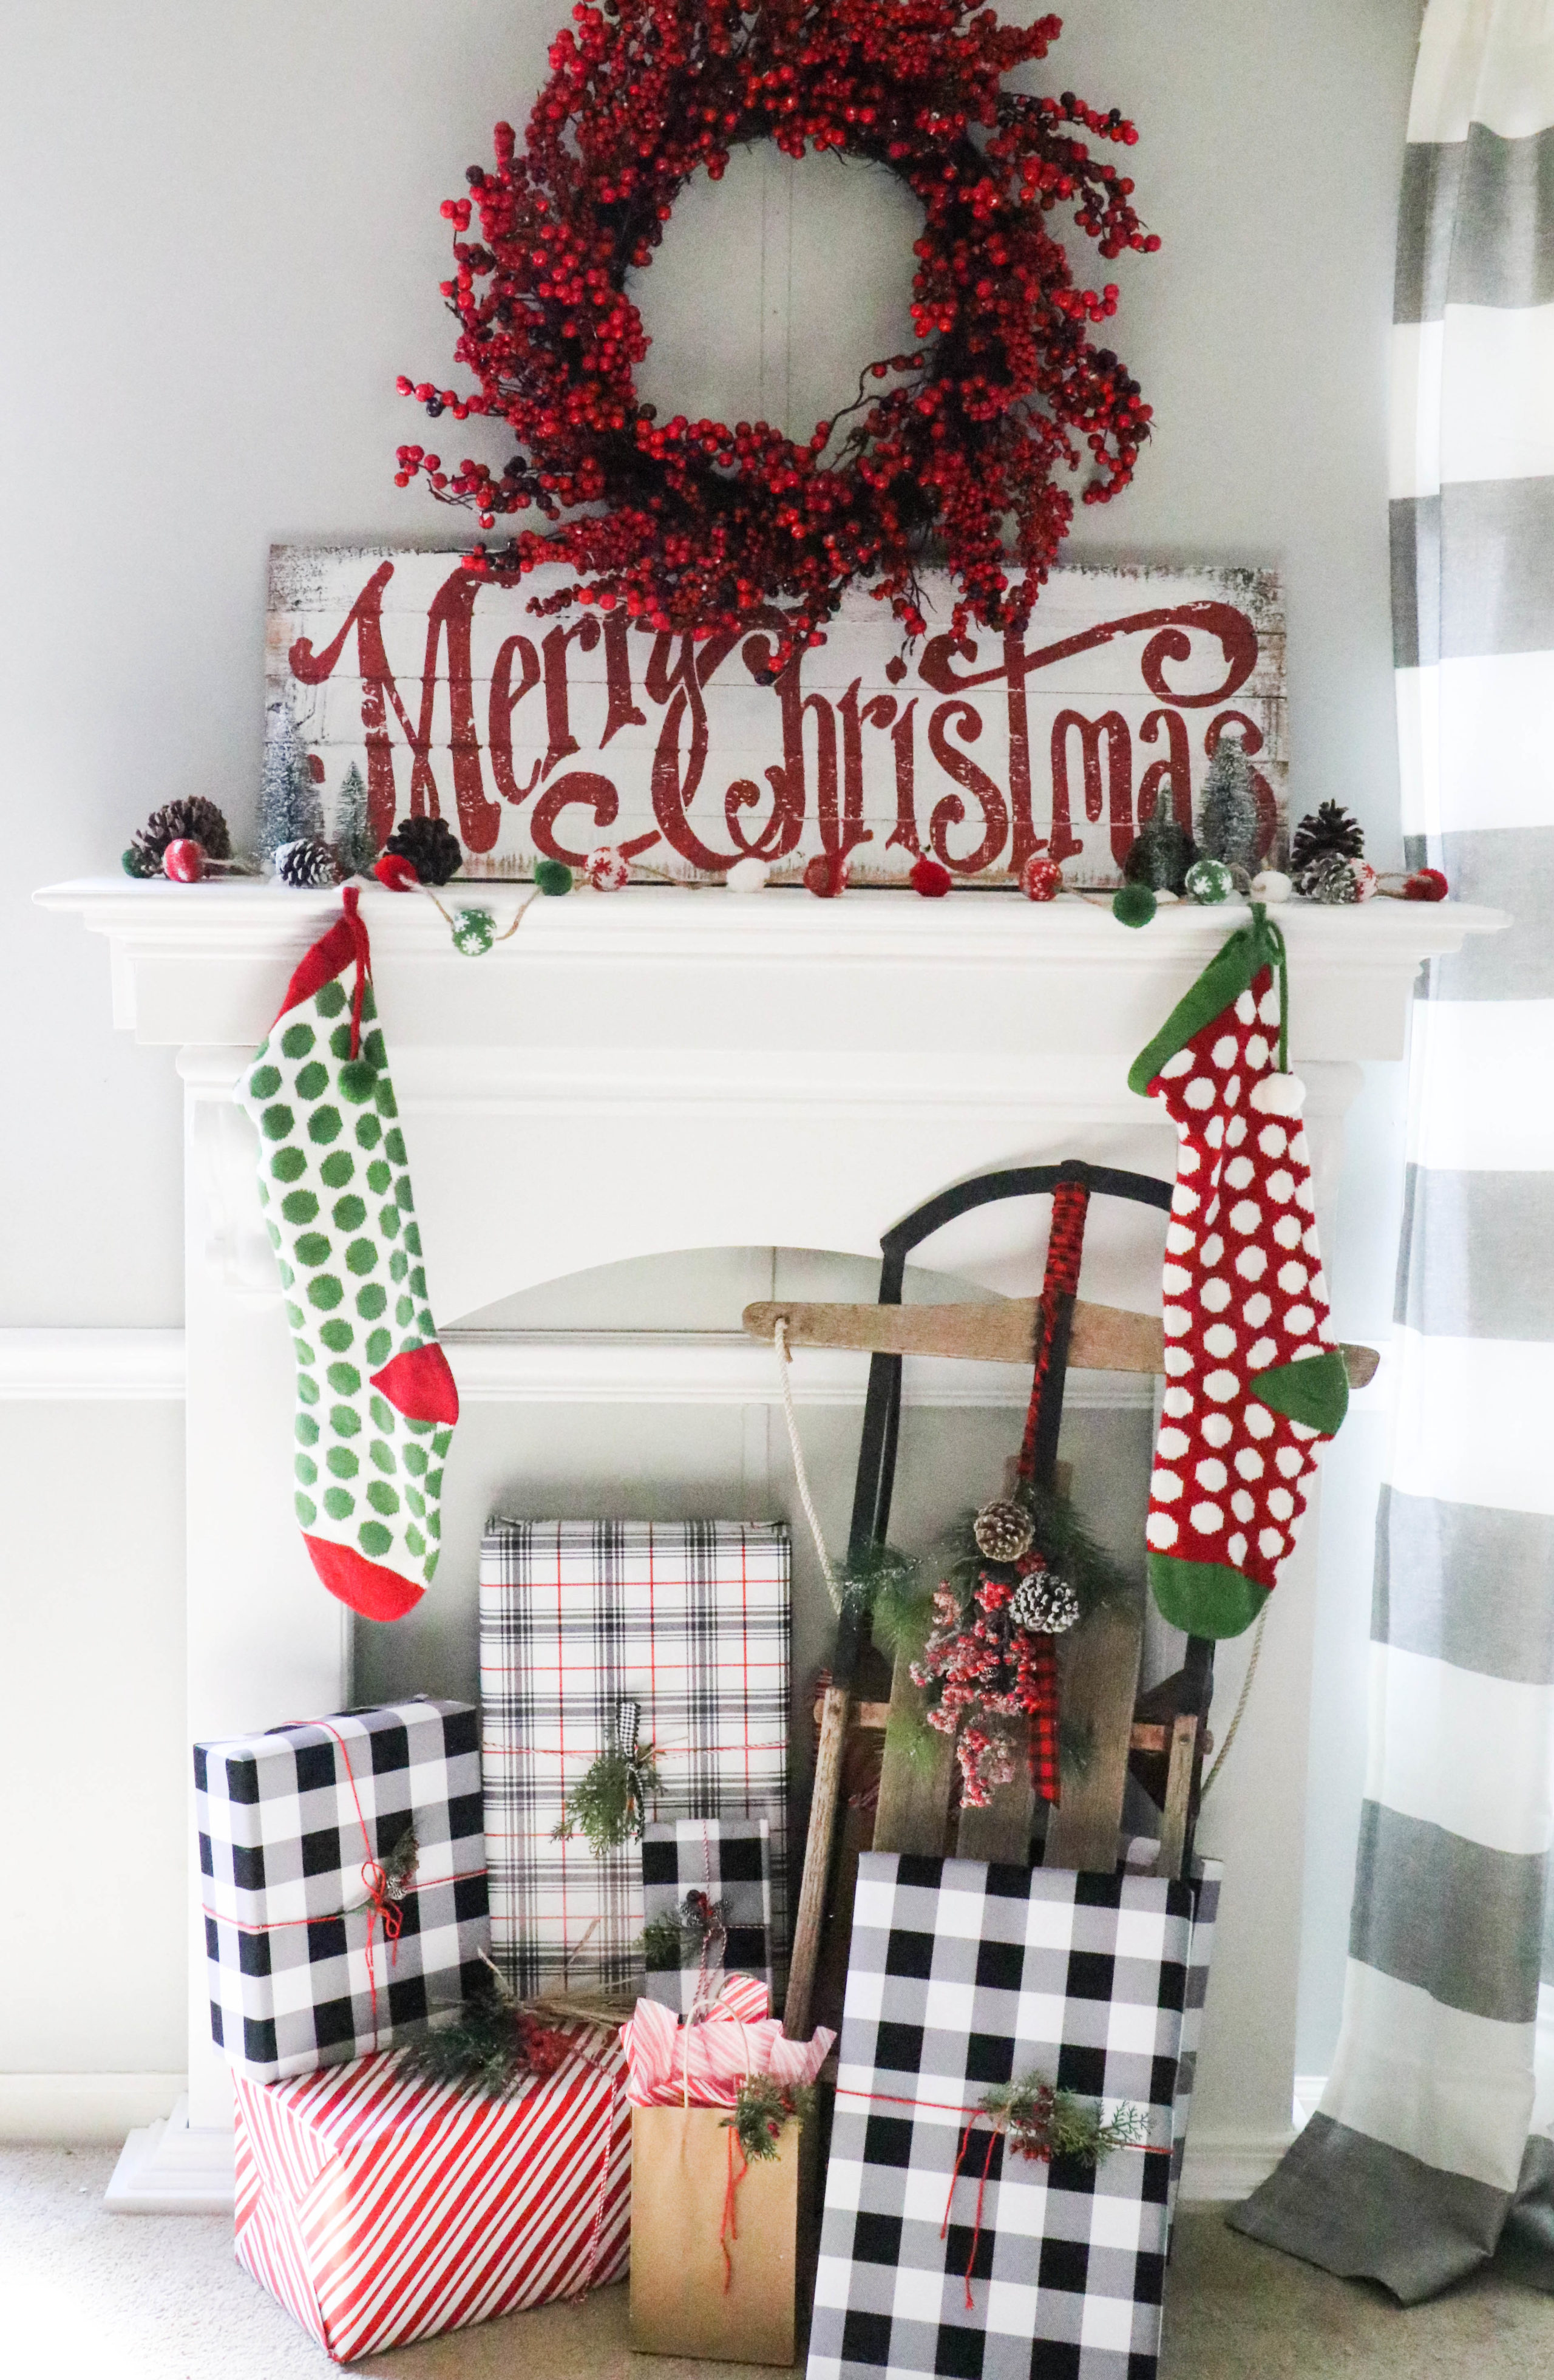 Decorating a Simplistic Christmas Mantel - Re-Fabbed